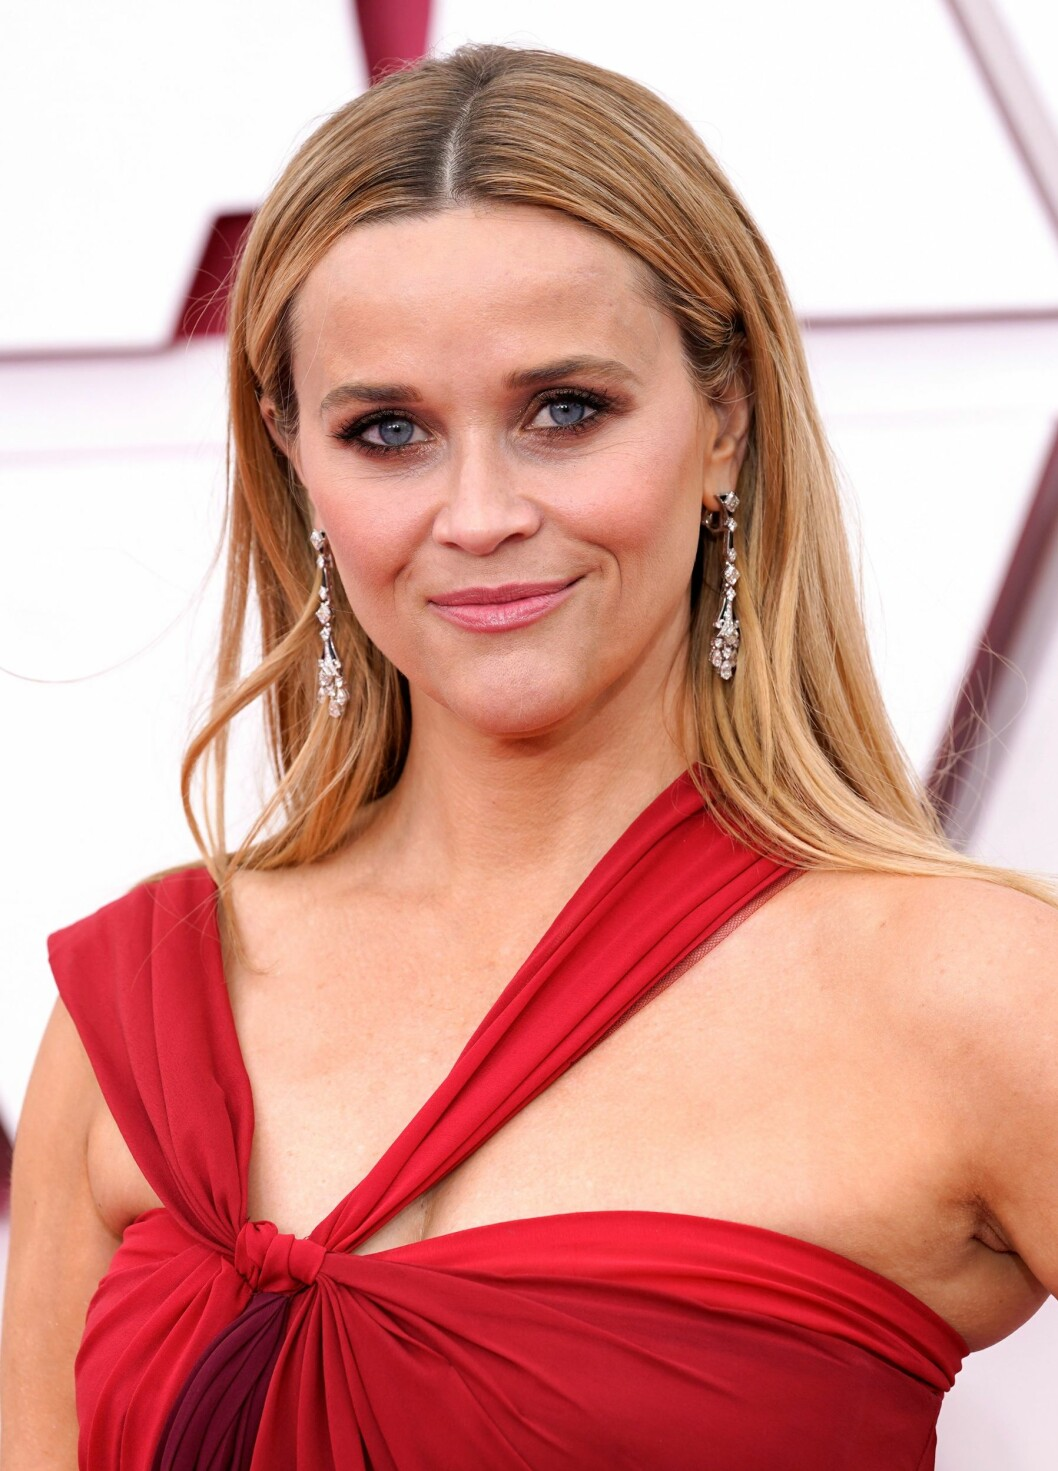 Reese Witherspoon hade lätt målade ögon